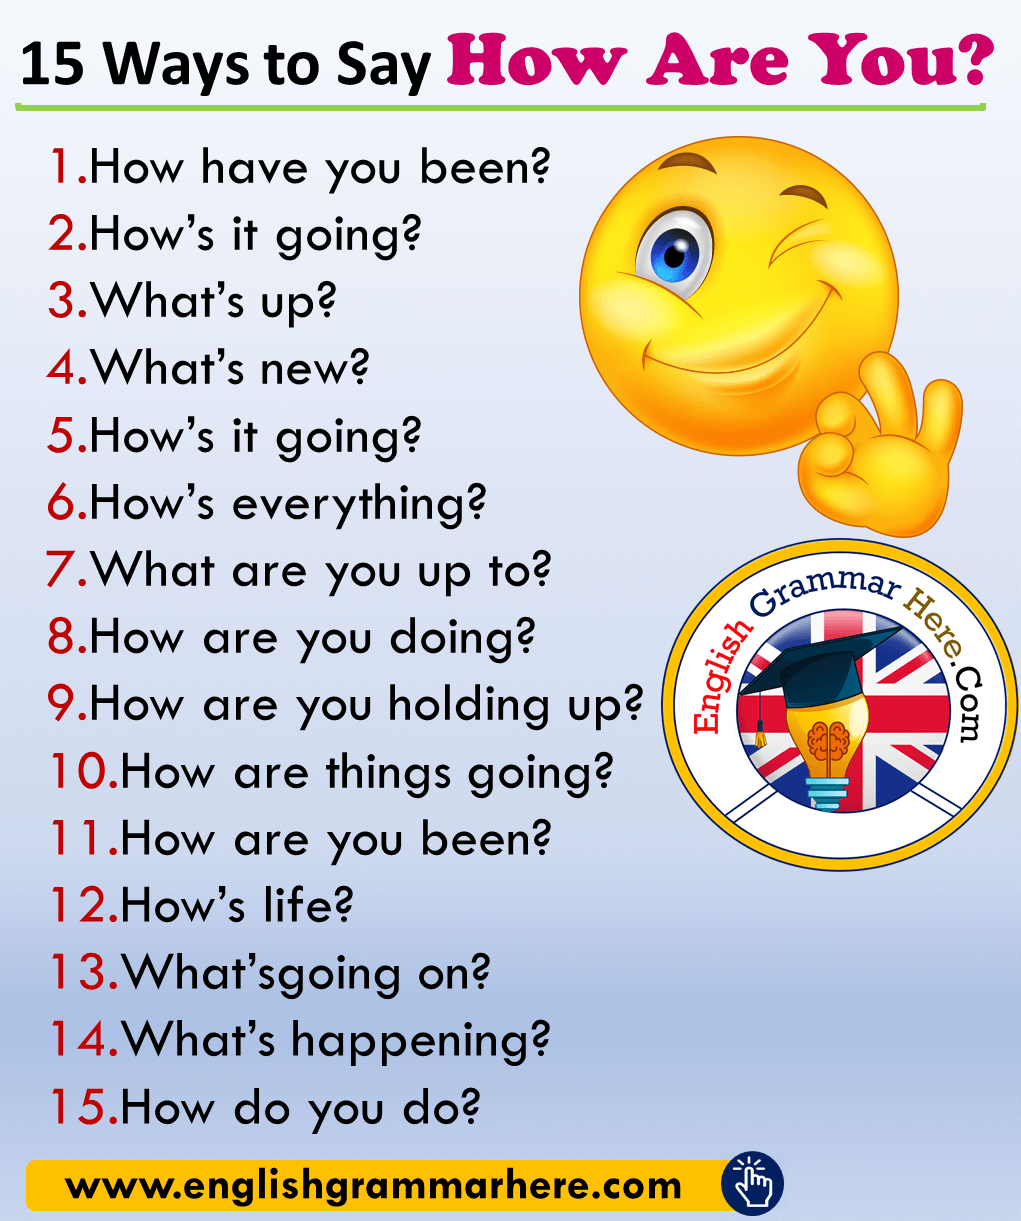 15 Ways to Say How Are You? in English